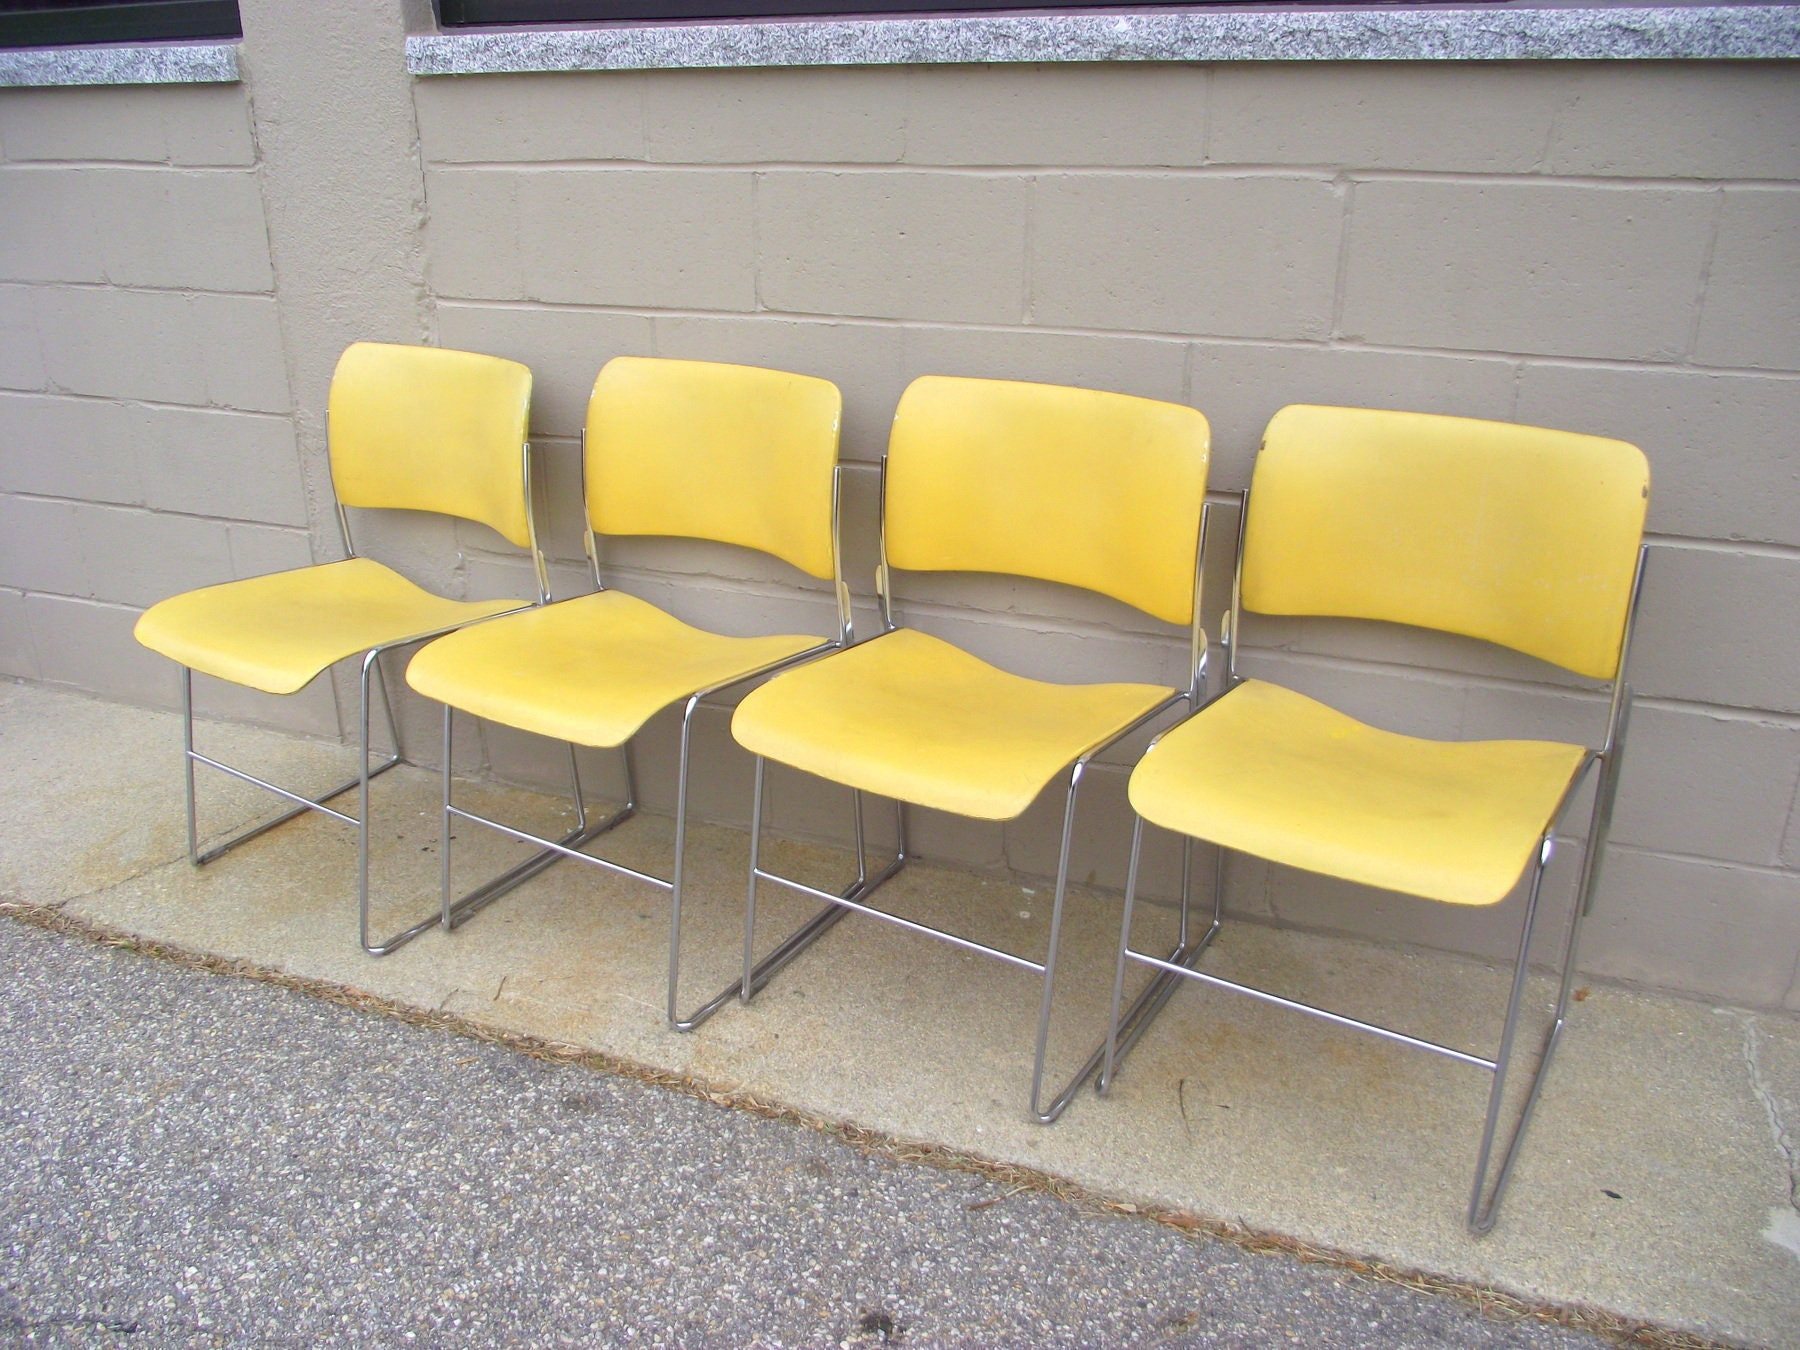 4 Vintage David Rowland Chairs 40 4 Stacking Office Chairs All Original Rare Yellow Chrome Industrial Stacking Mid Century Dining